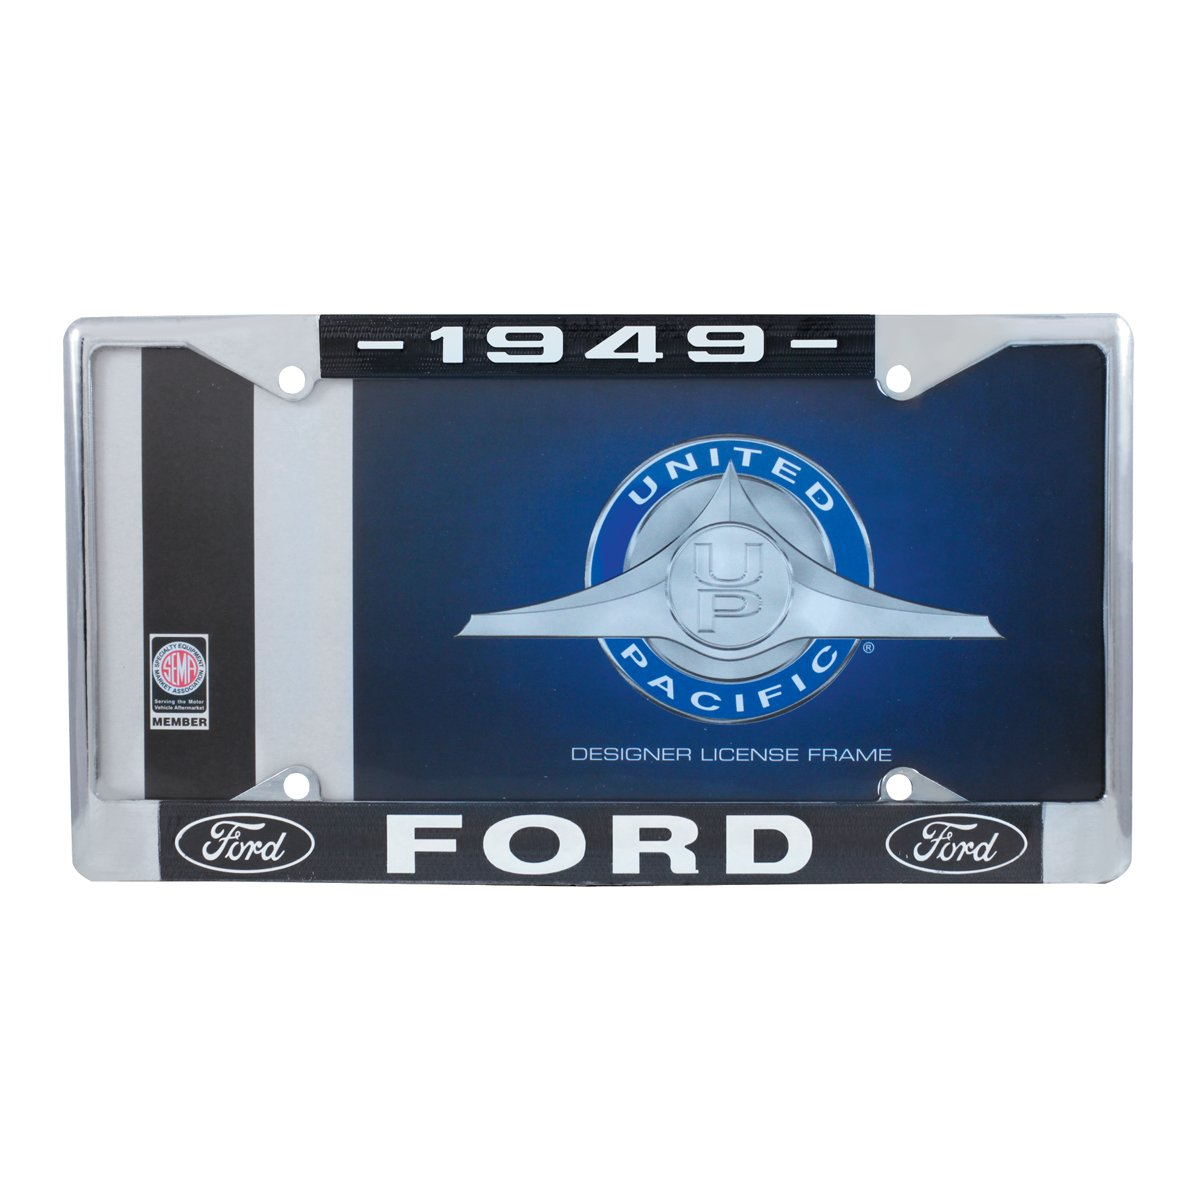 United Pacific A9049-49 1949 Ford License Plate Frame